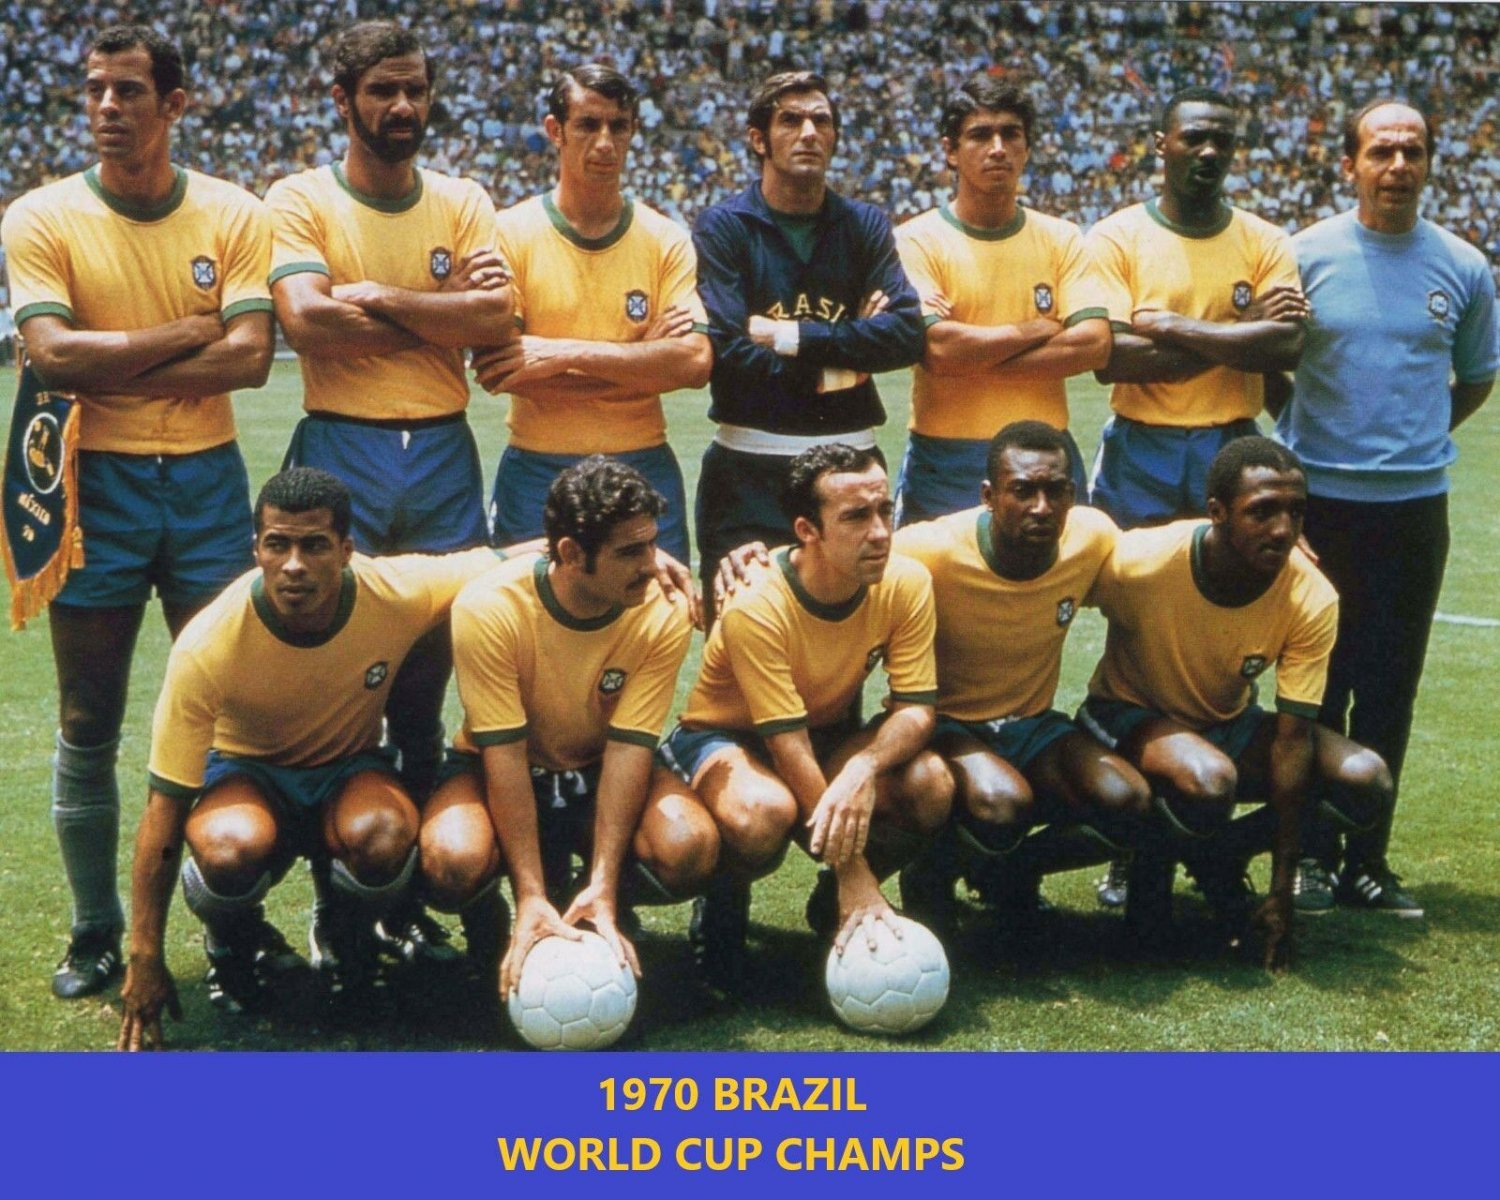 1970 BRAZIL 8X10 TEAM PHOTO SOCCER PICTURE WORLD CUP CHAMPS